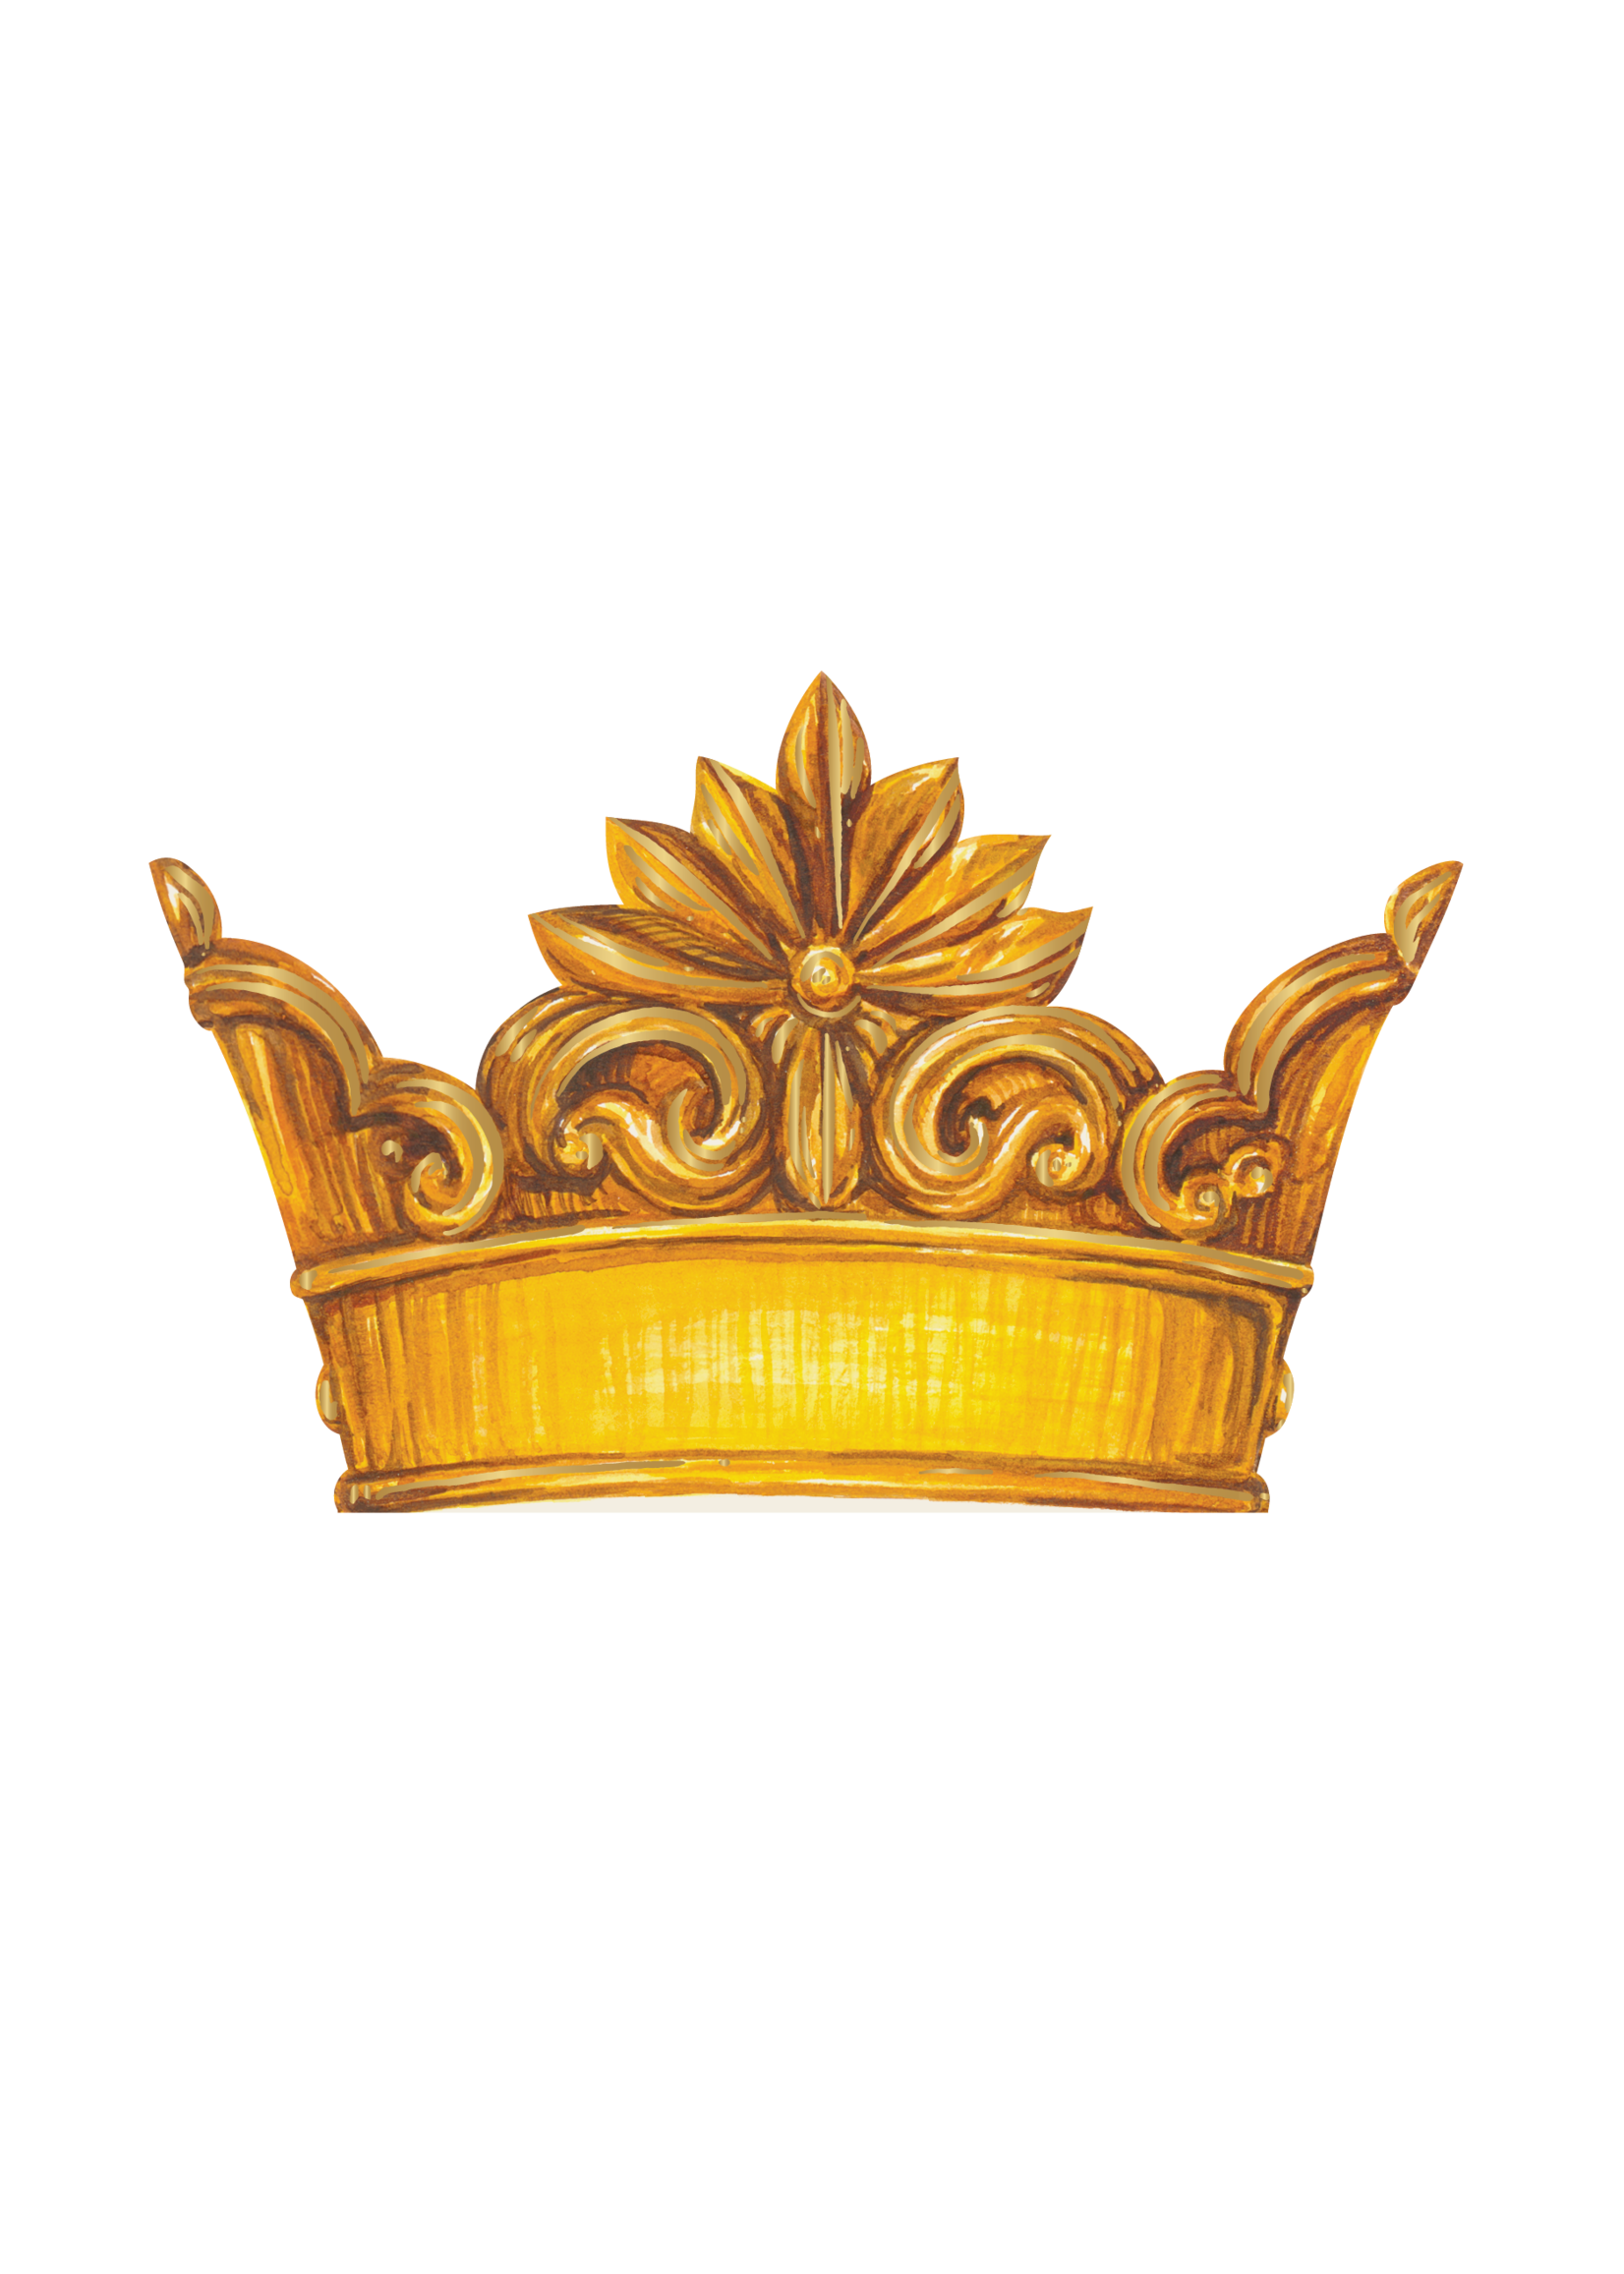 Hester & Cook Place Cards - Crown (pack of 12)